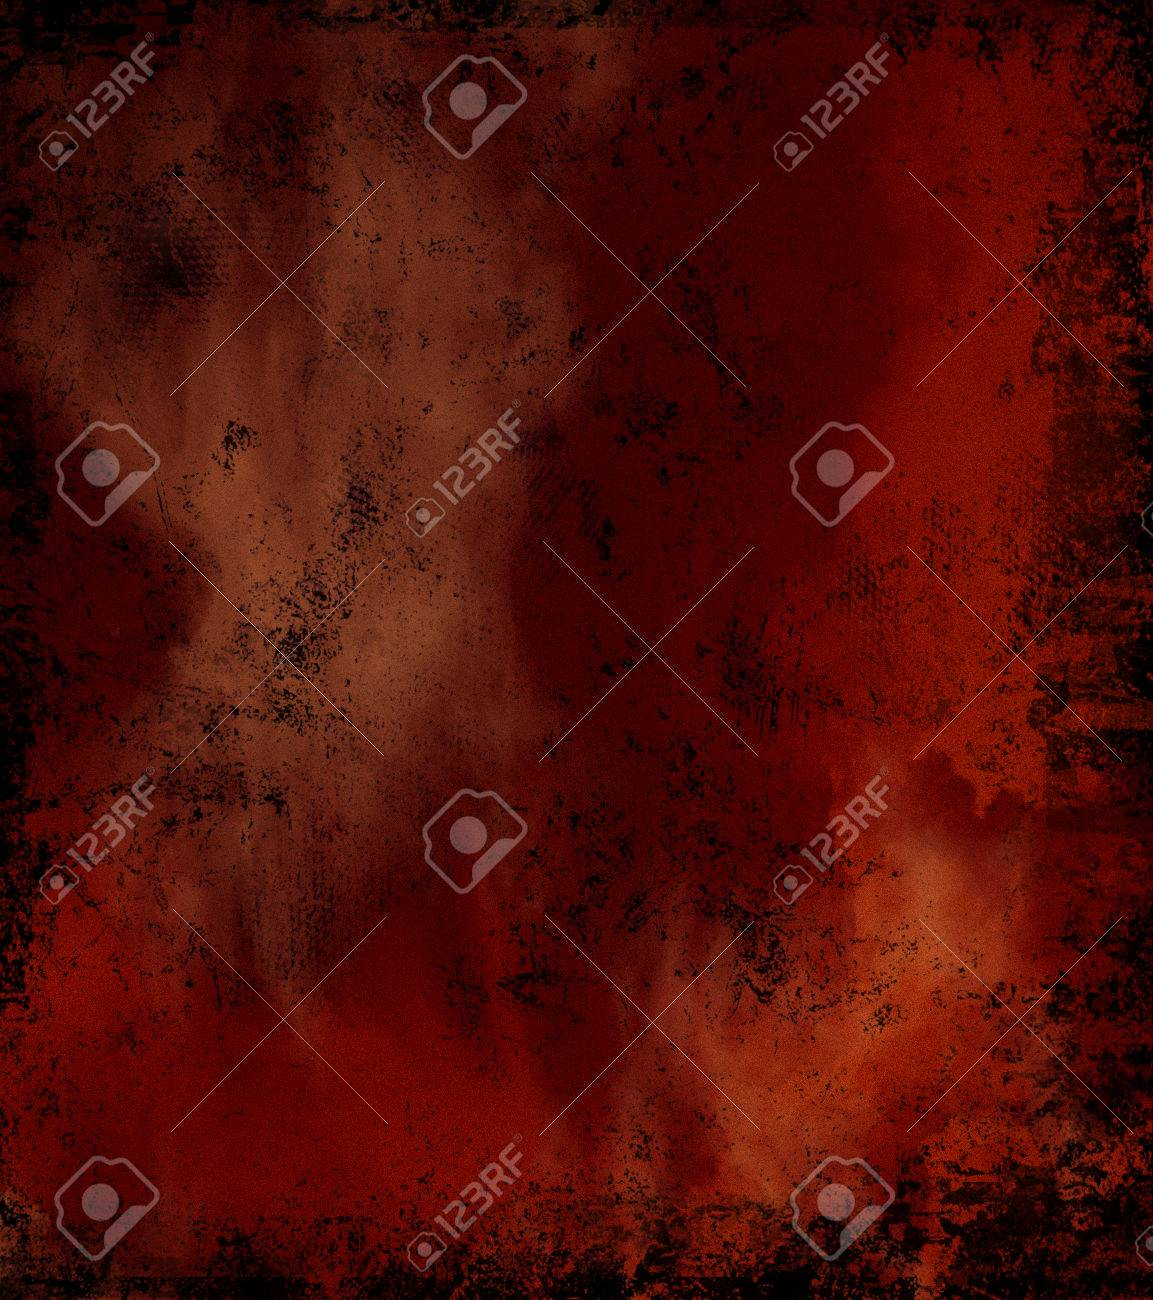 Gloomy Vintage Texture Ideal For Retro Backgrounds In Dark Red Colors Reklamni Fotografie